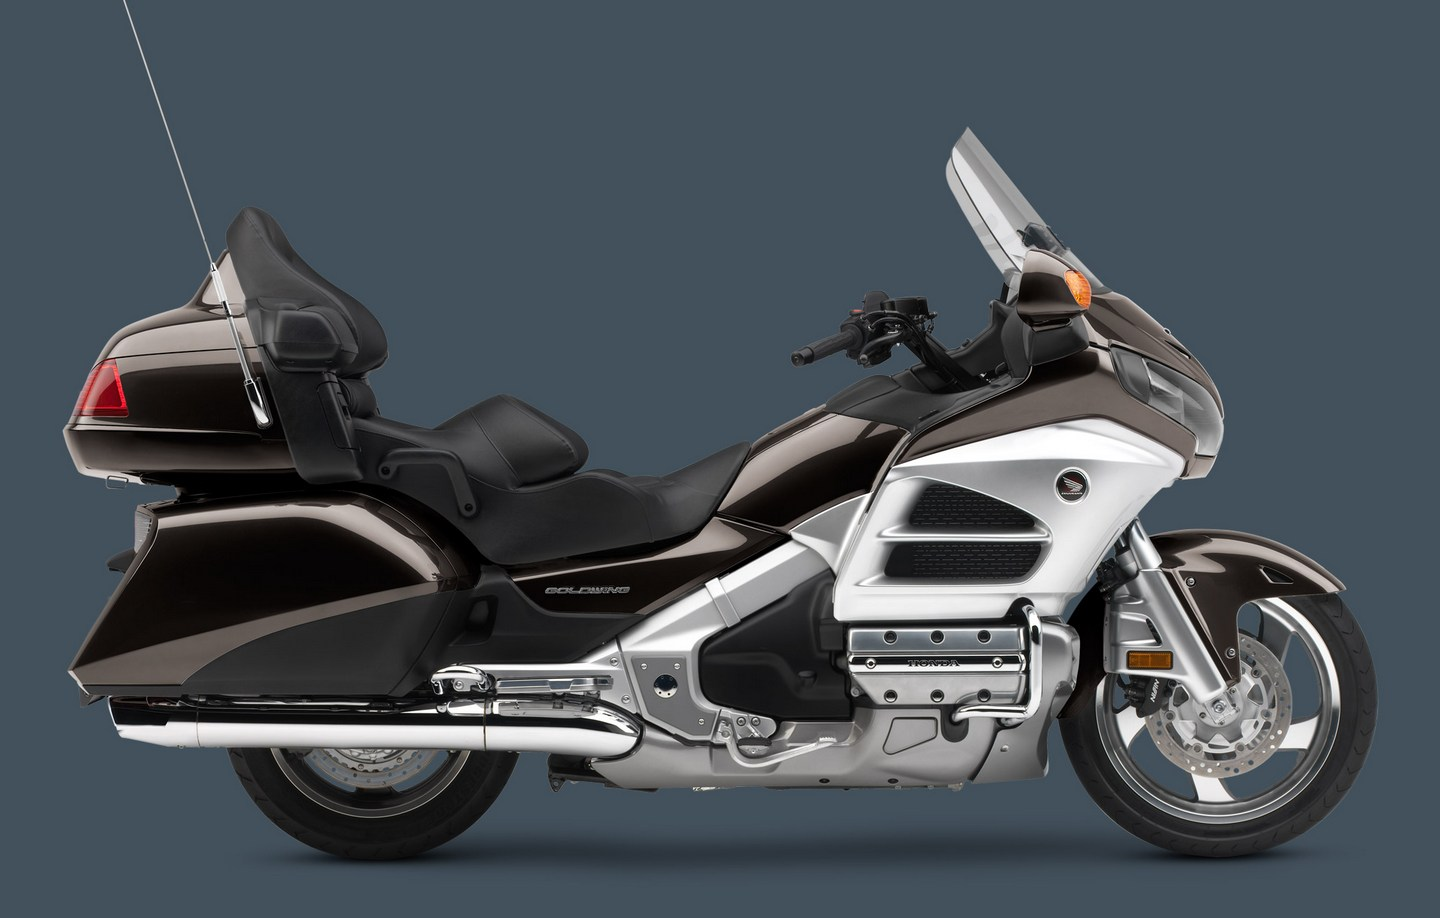 ... will be no major updates in Honda's flagship Gold Wing bike for 2013